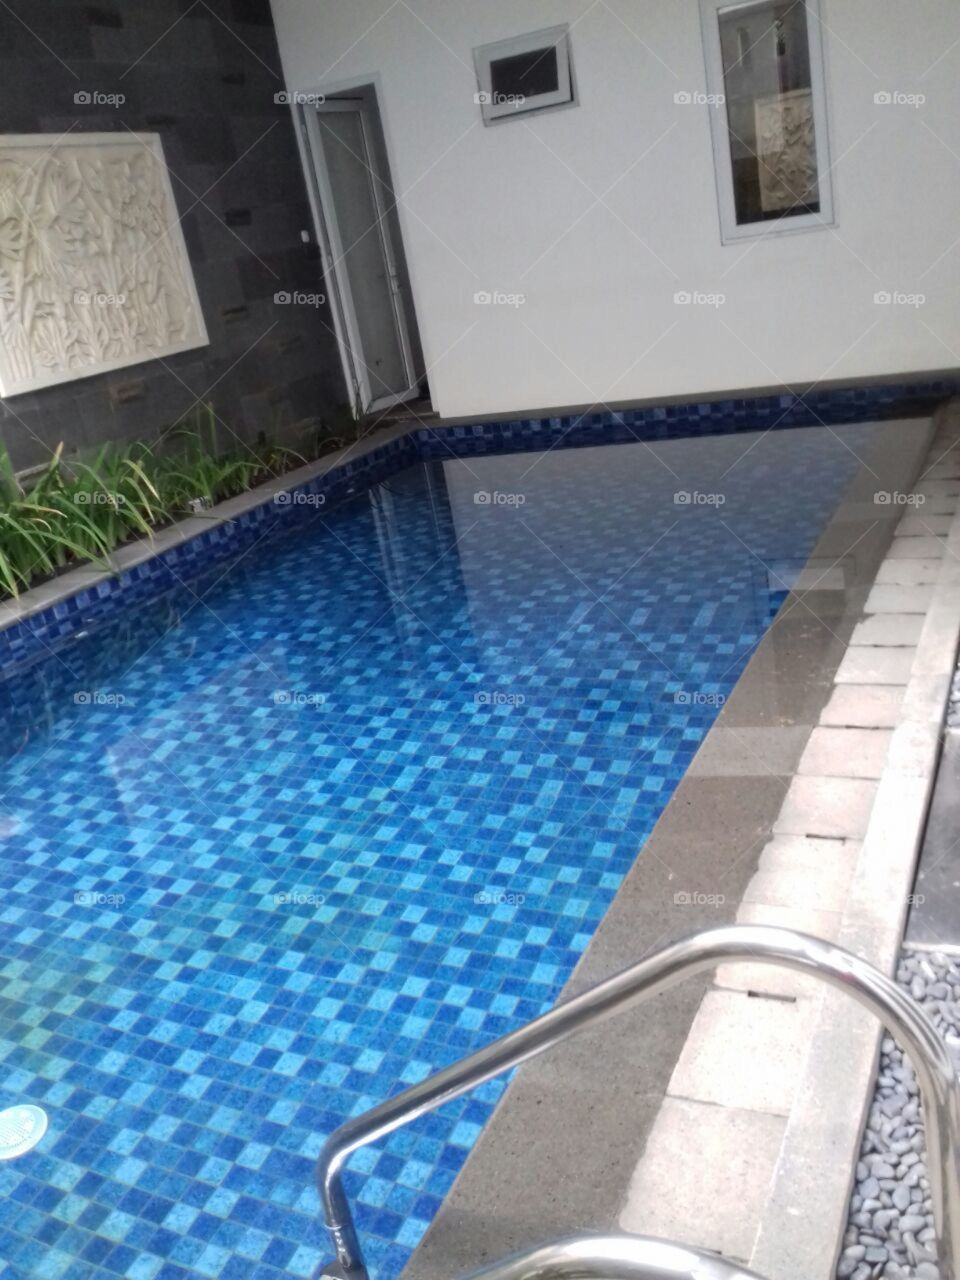 swmming pool for private